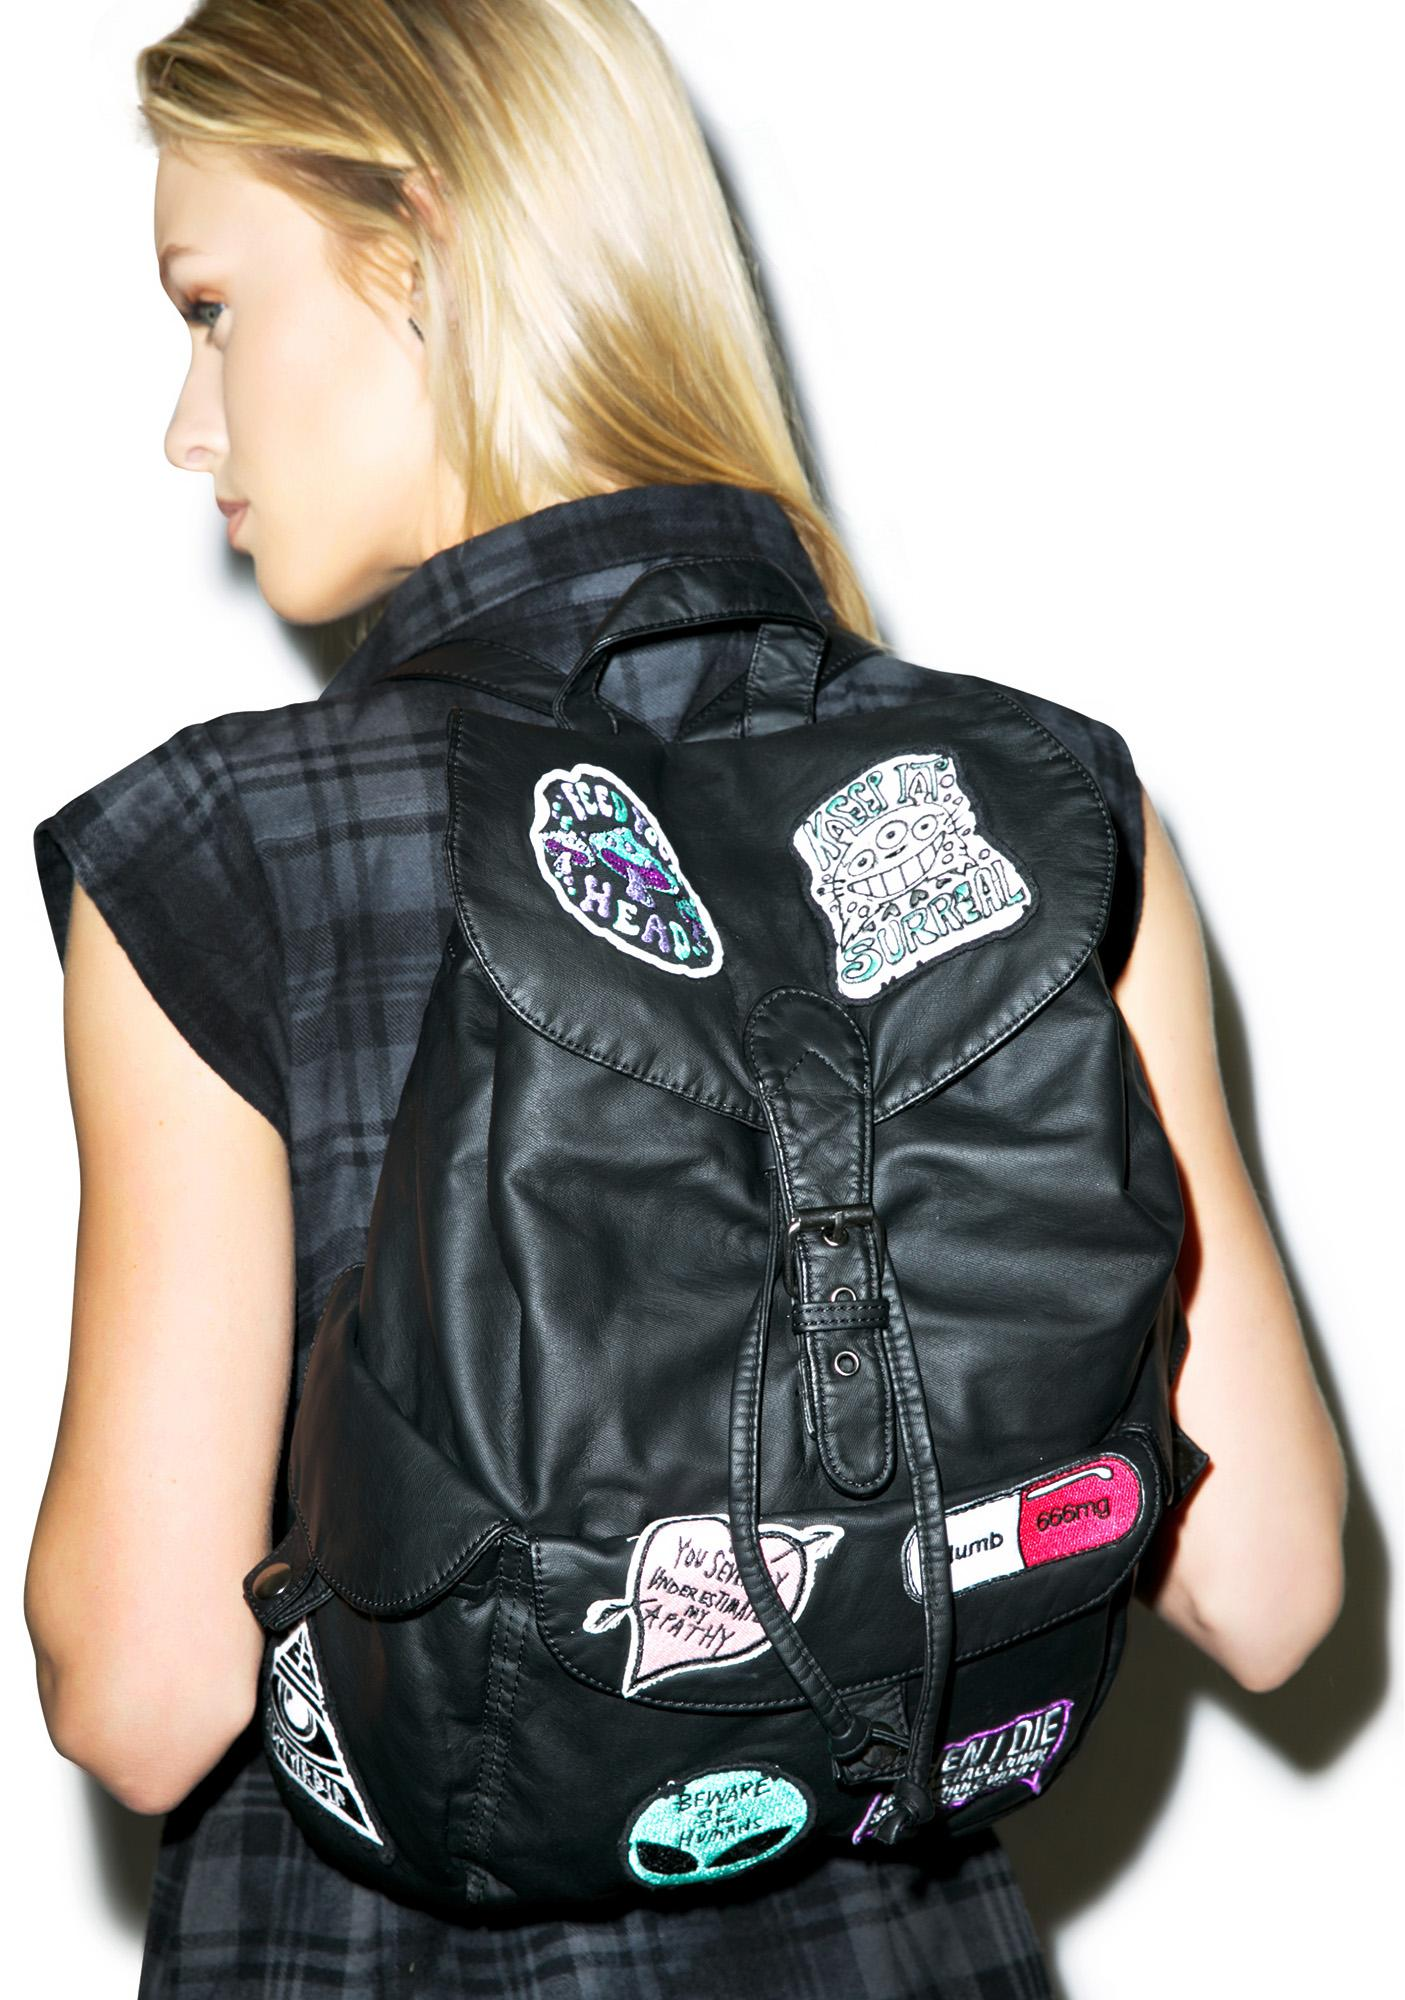 Disturbia Numb Backpack